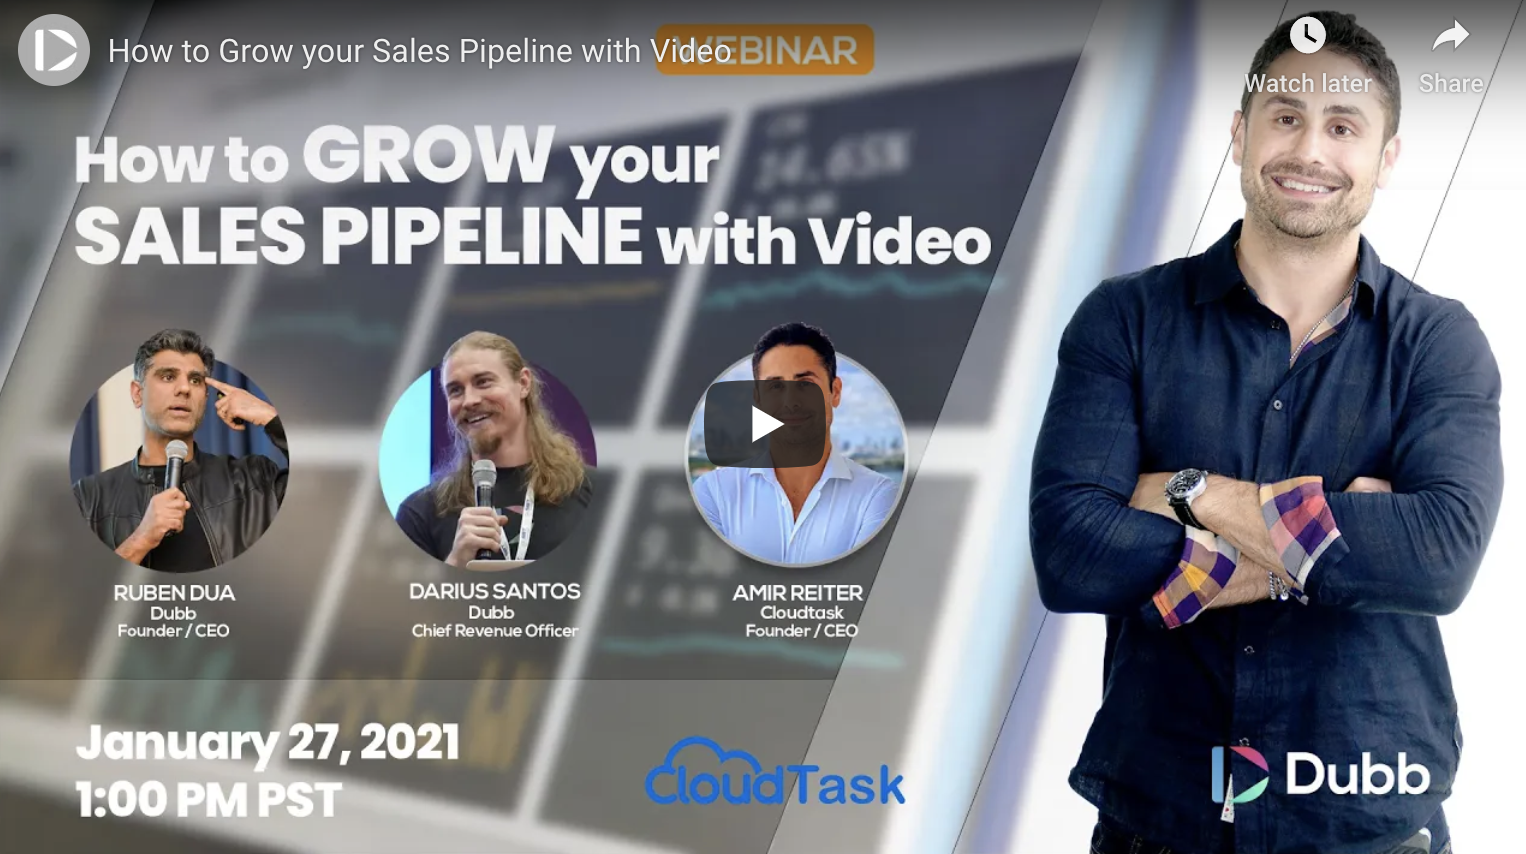 How to Grow Your Sales Pipeline with Video